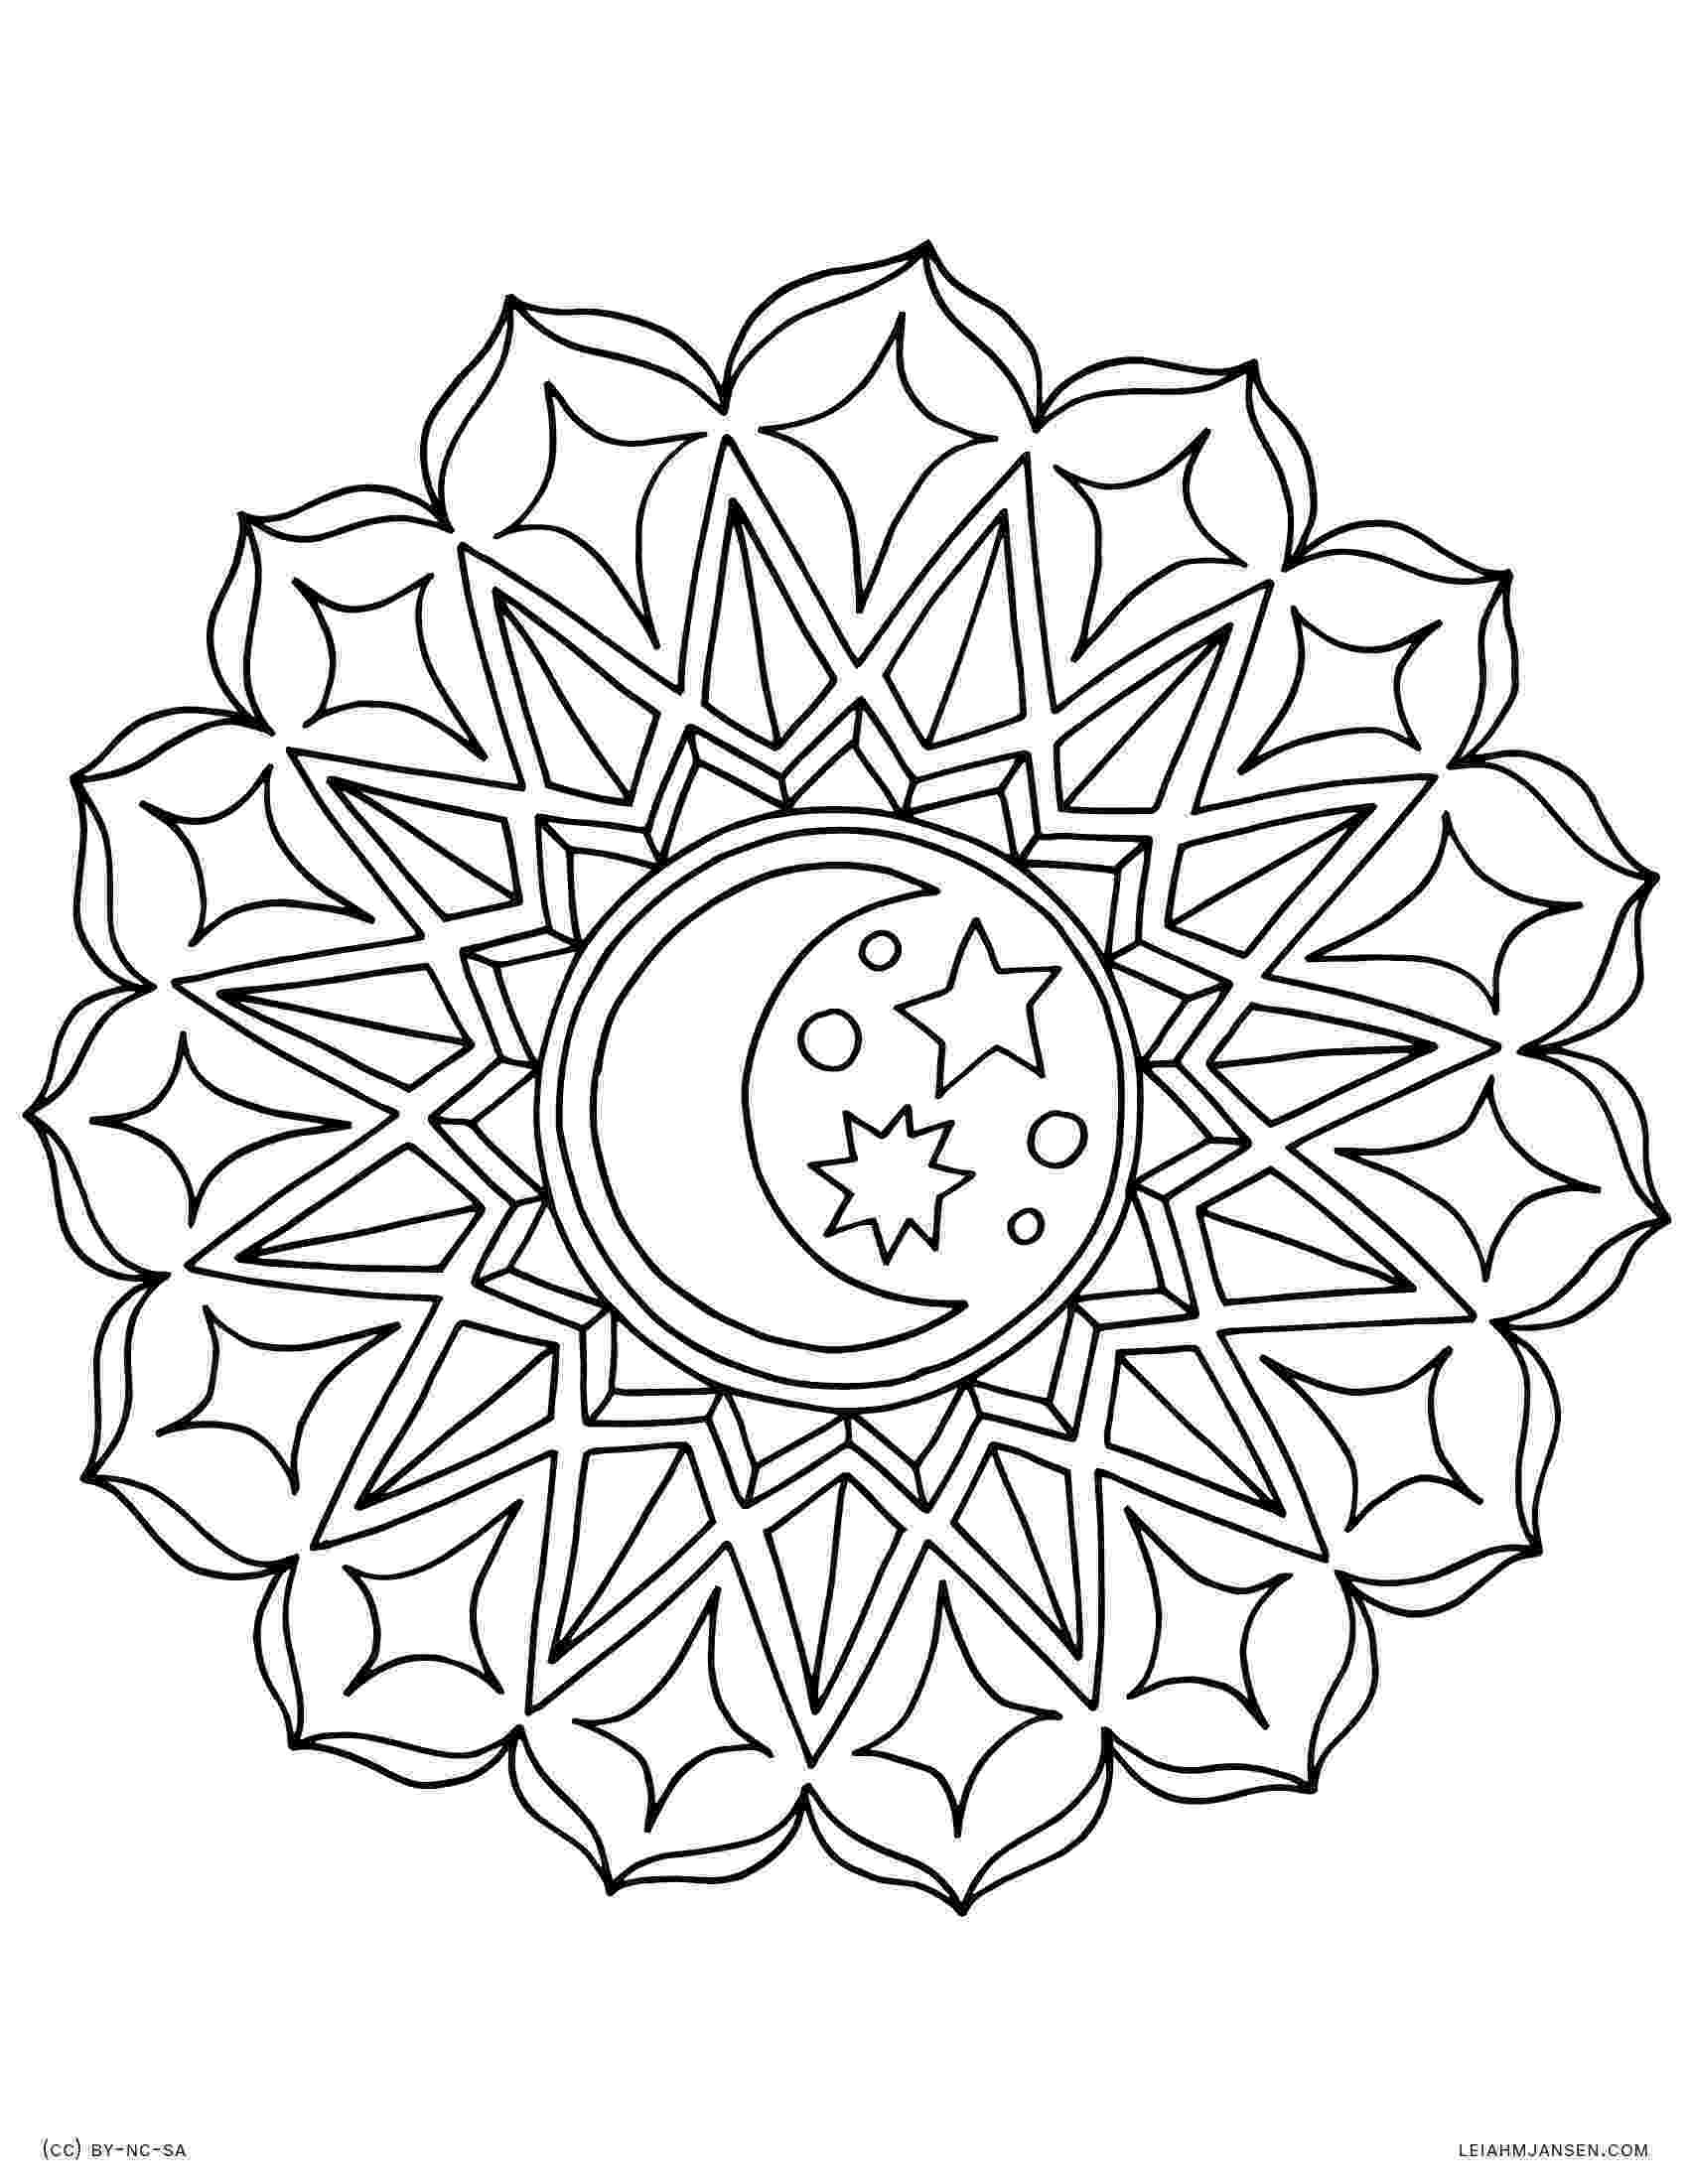 printable mandala coloring pages for adults dreamcatcher mandala coloring pages at getdrawings free printable coloring for pages adults mandala